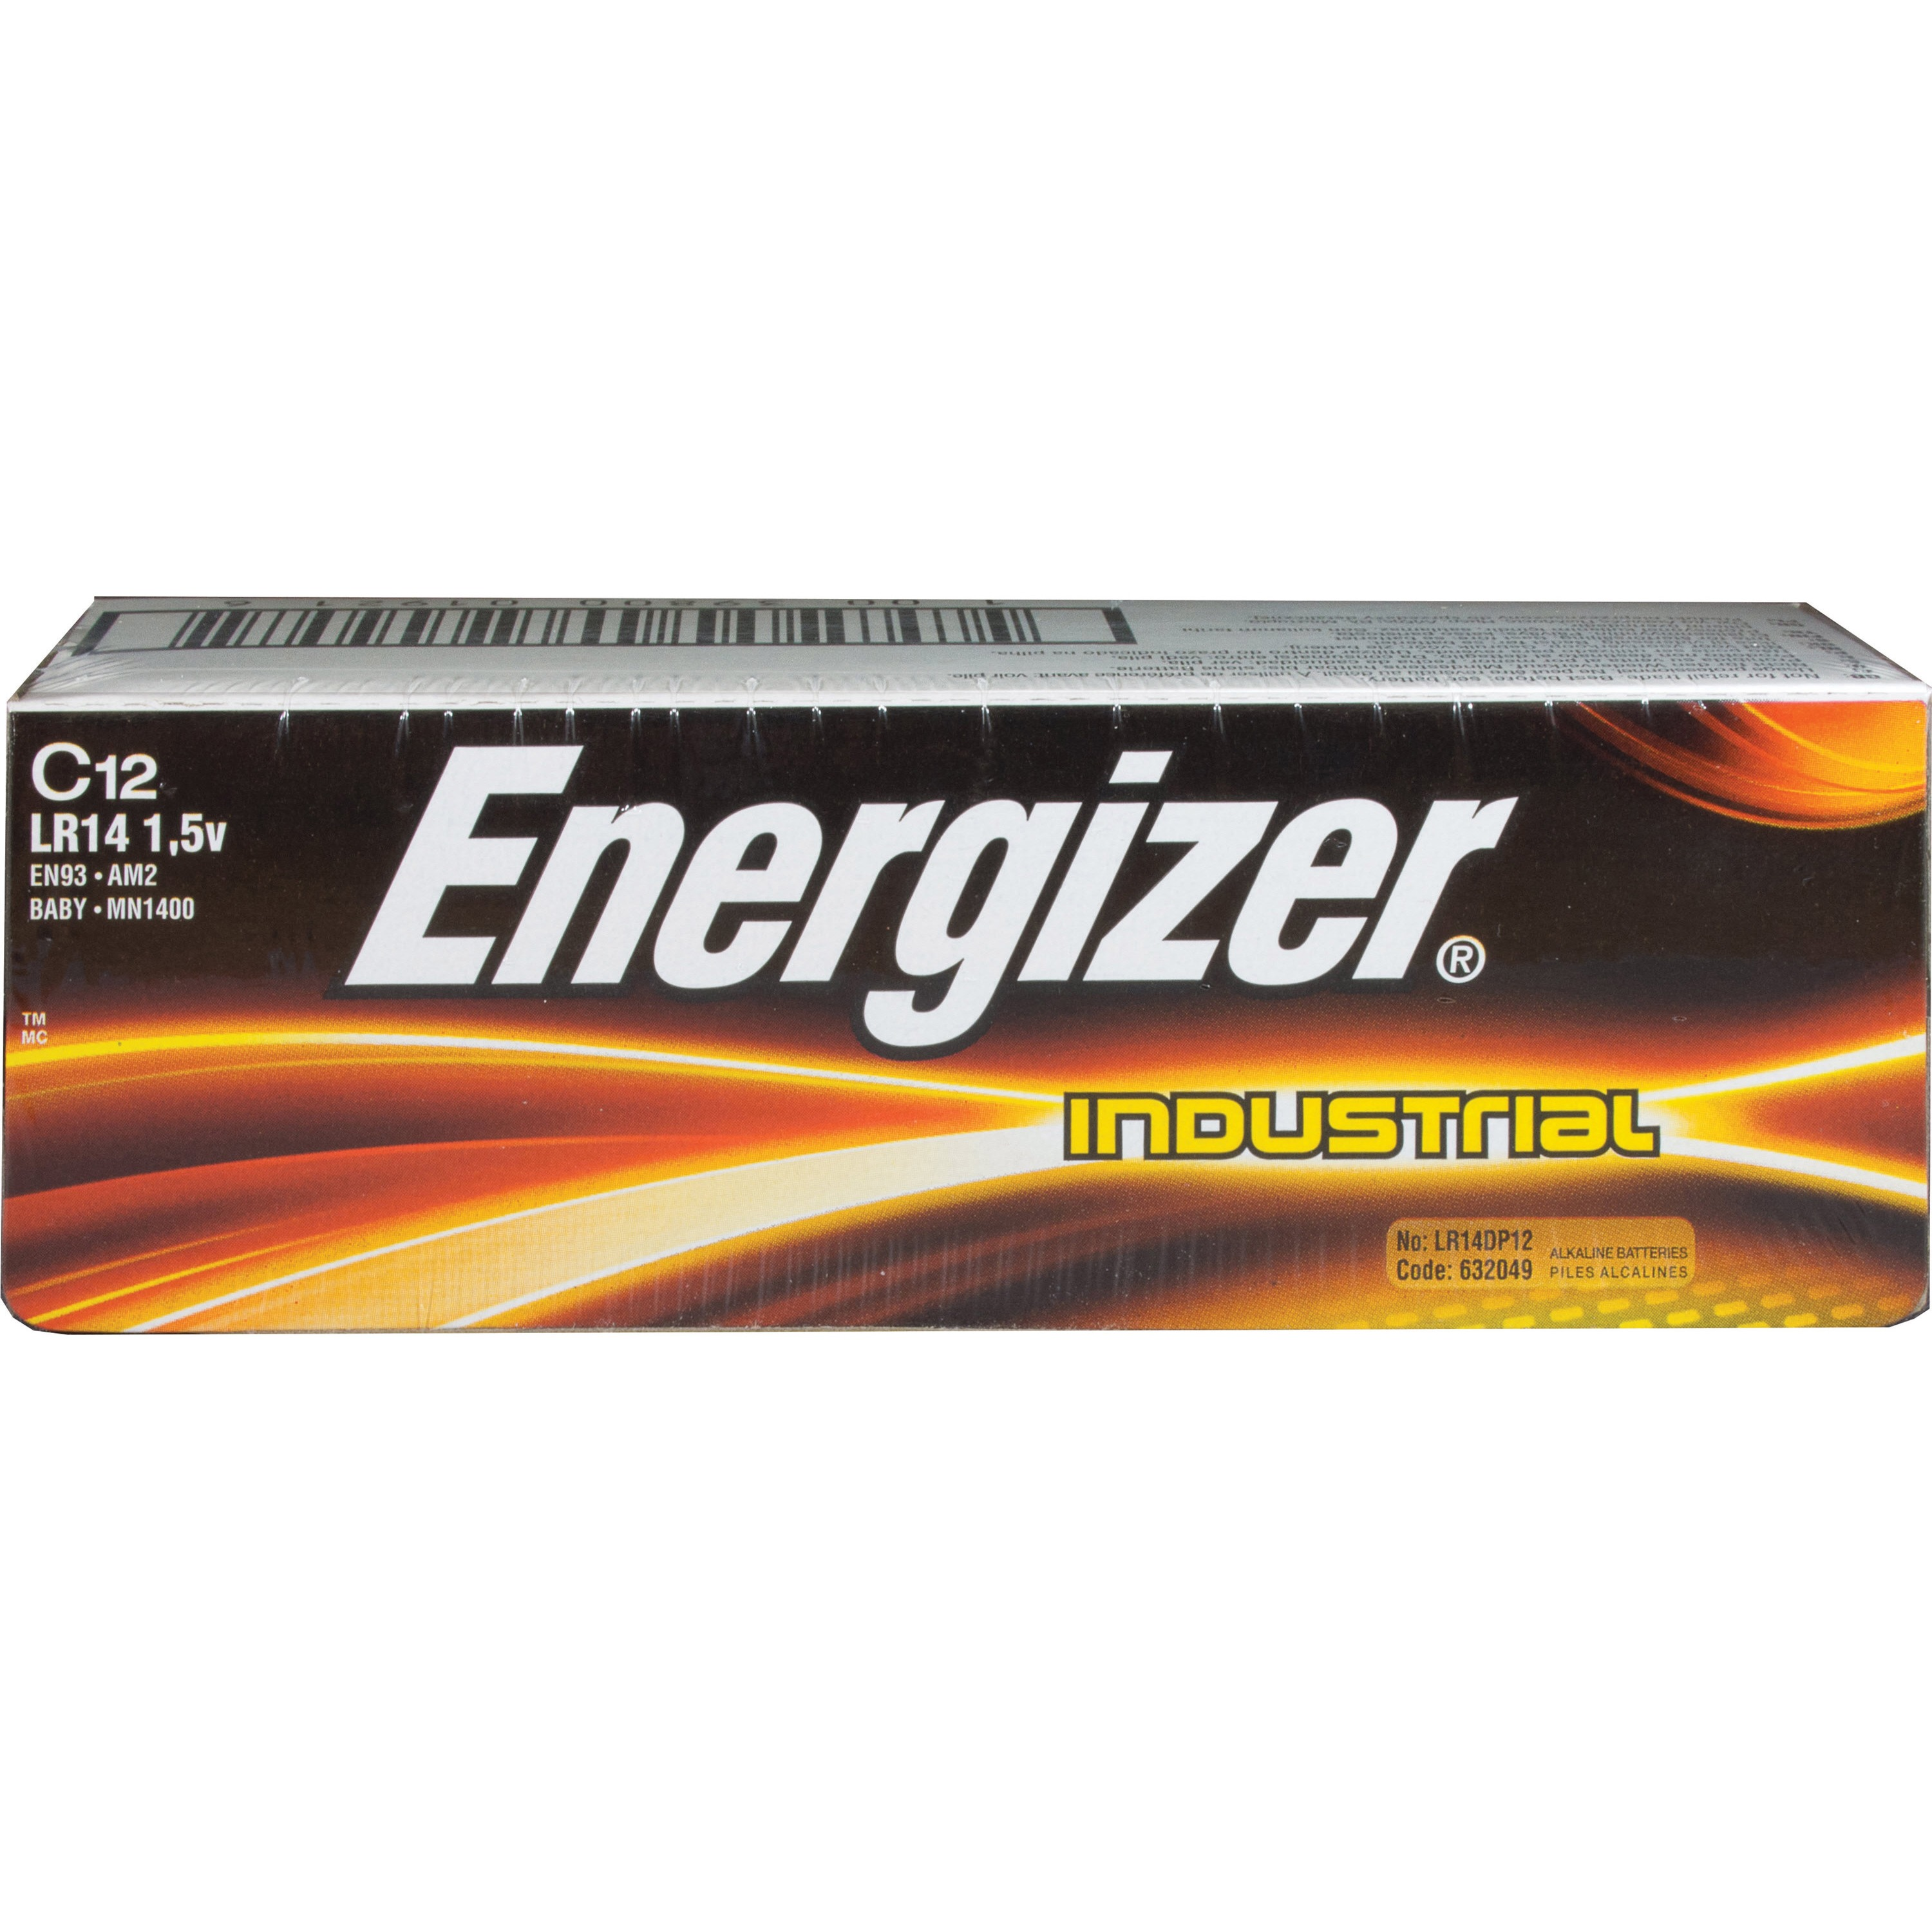 Energizer Industrial Alkaline C Batteries, 12 Count